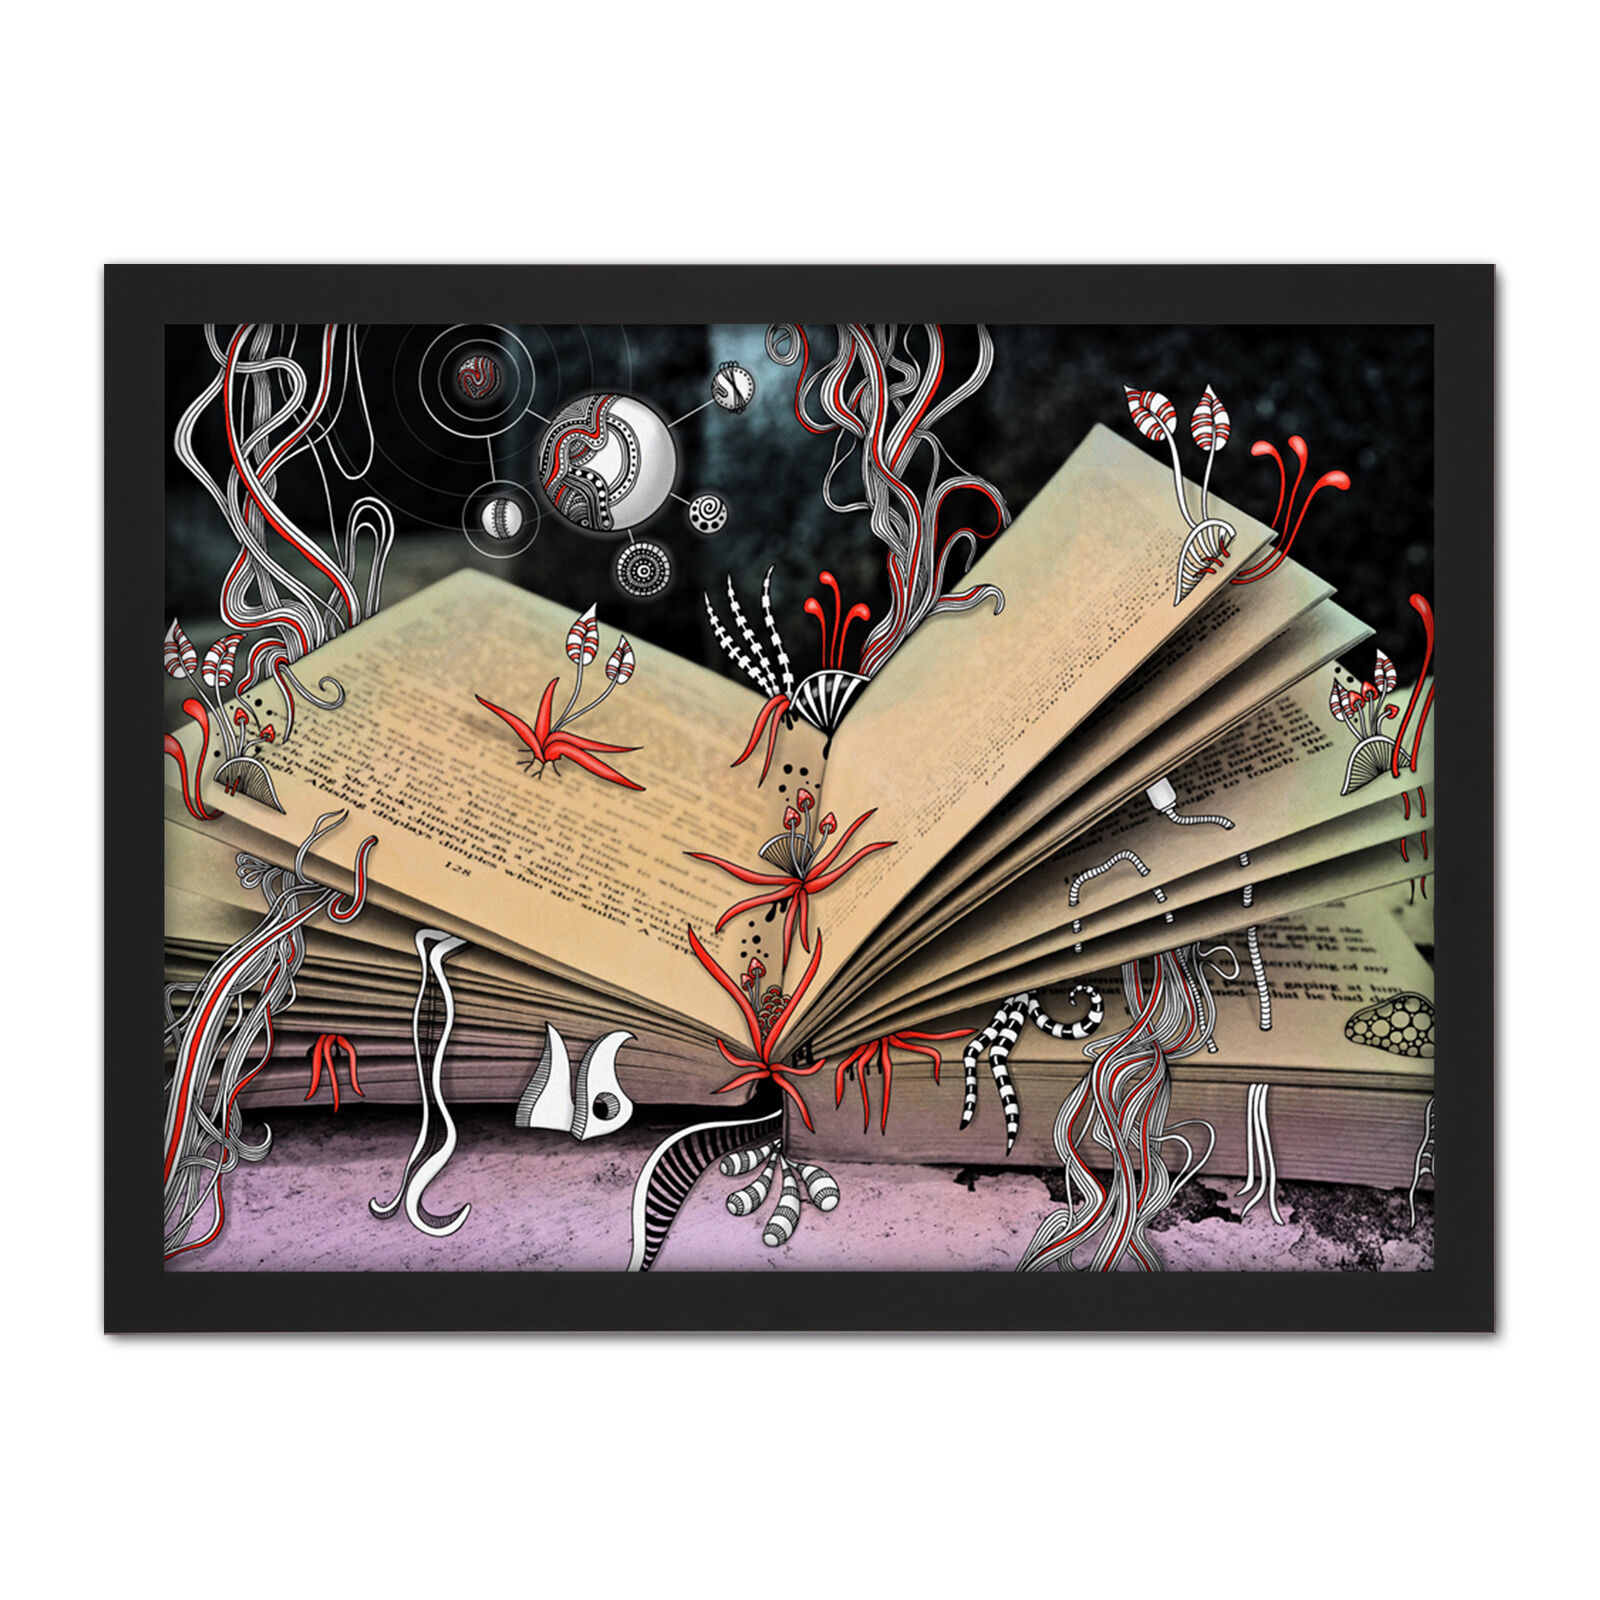 Abstract Fantasy World Book Doodle Painting Framed Wall Art Print 18X24 In